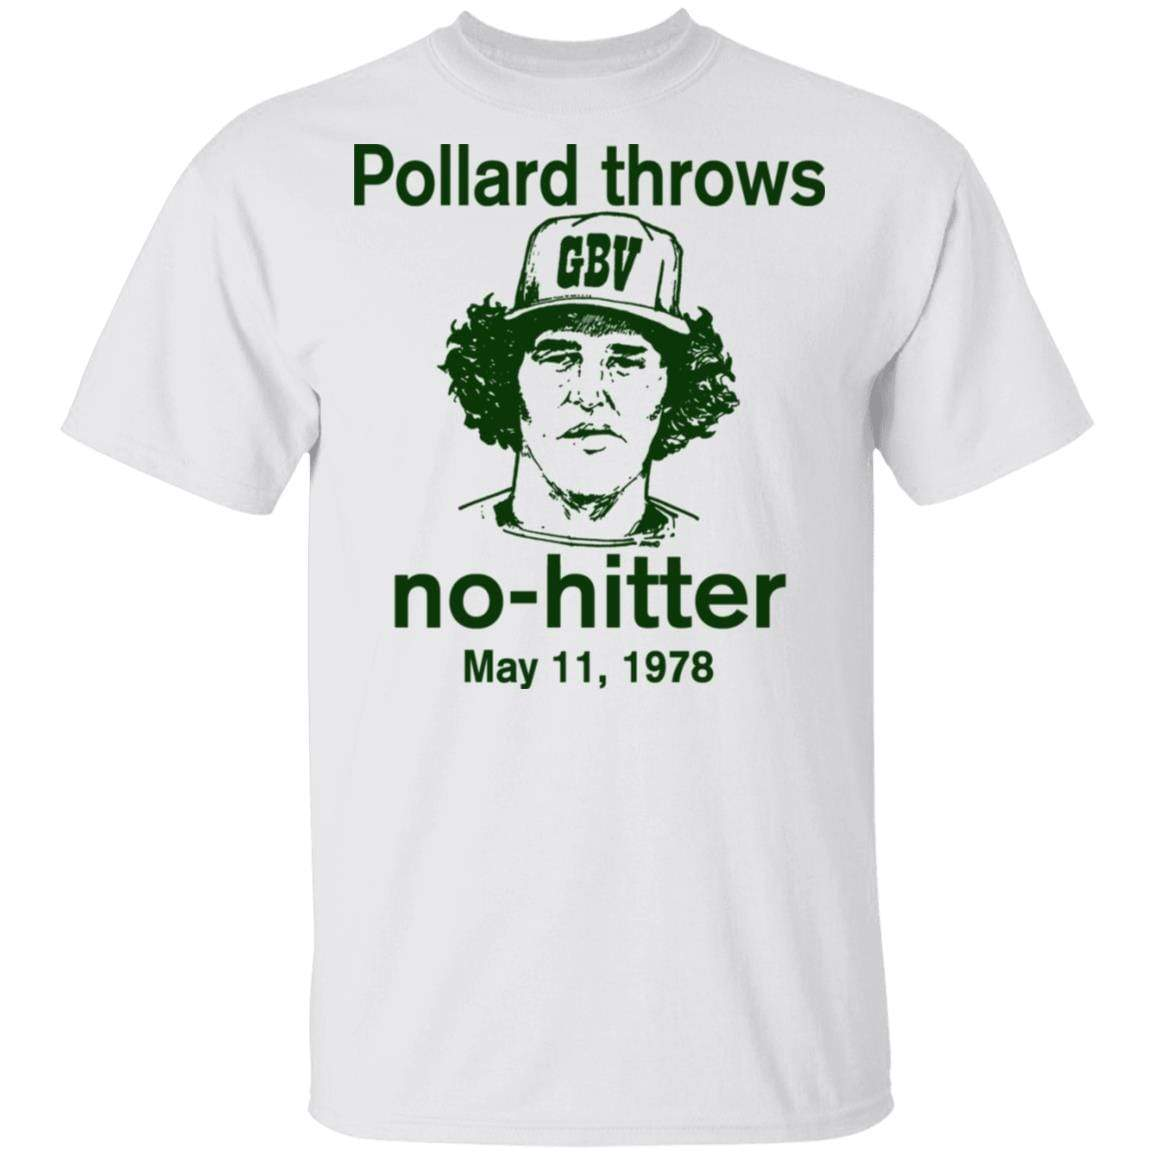 Pollard Throws No-Hitter May 11, 1978 T-Shirts, Hoodies 1049-9974-87130077-48300 - Tee Ript